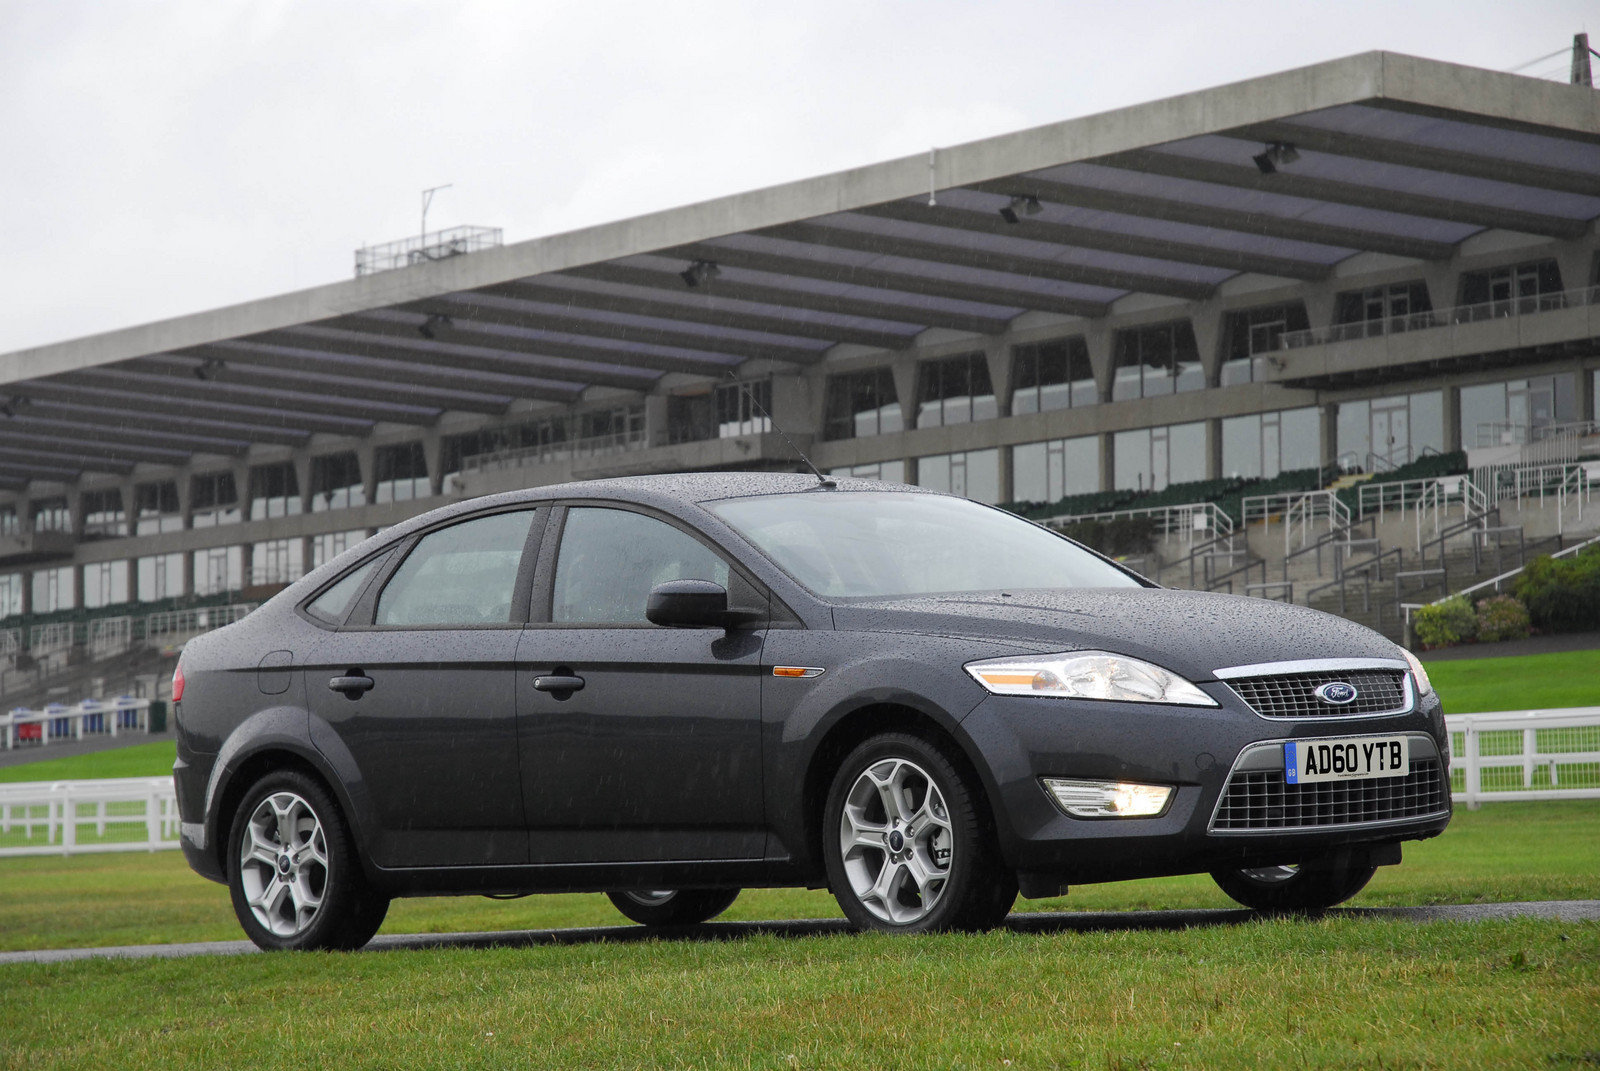 2010 ford mondeo sport picture 372369 car review top speed. Black Bedroom Furniture Sets. Home Design Ideas